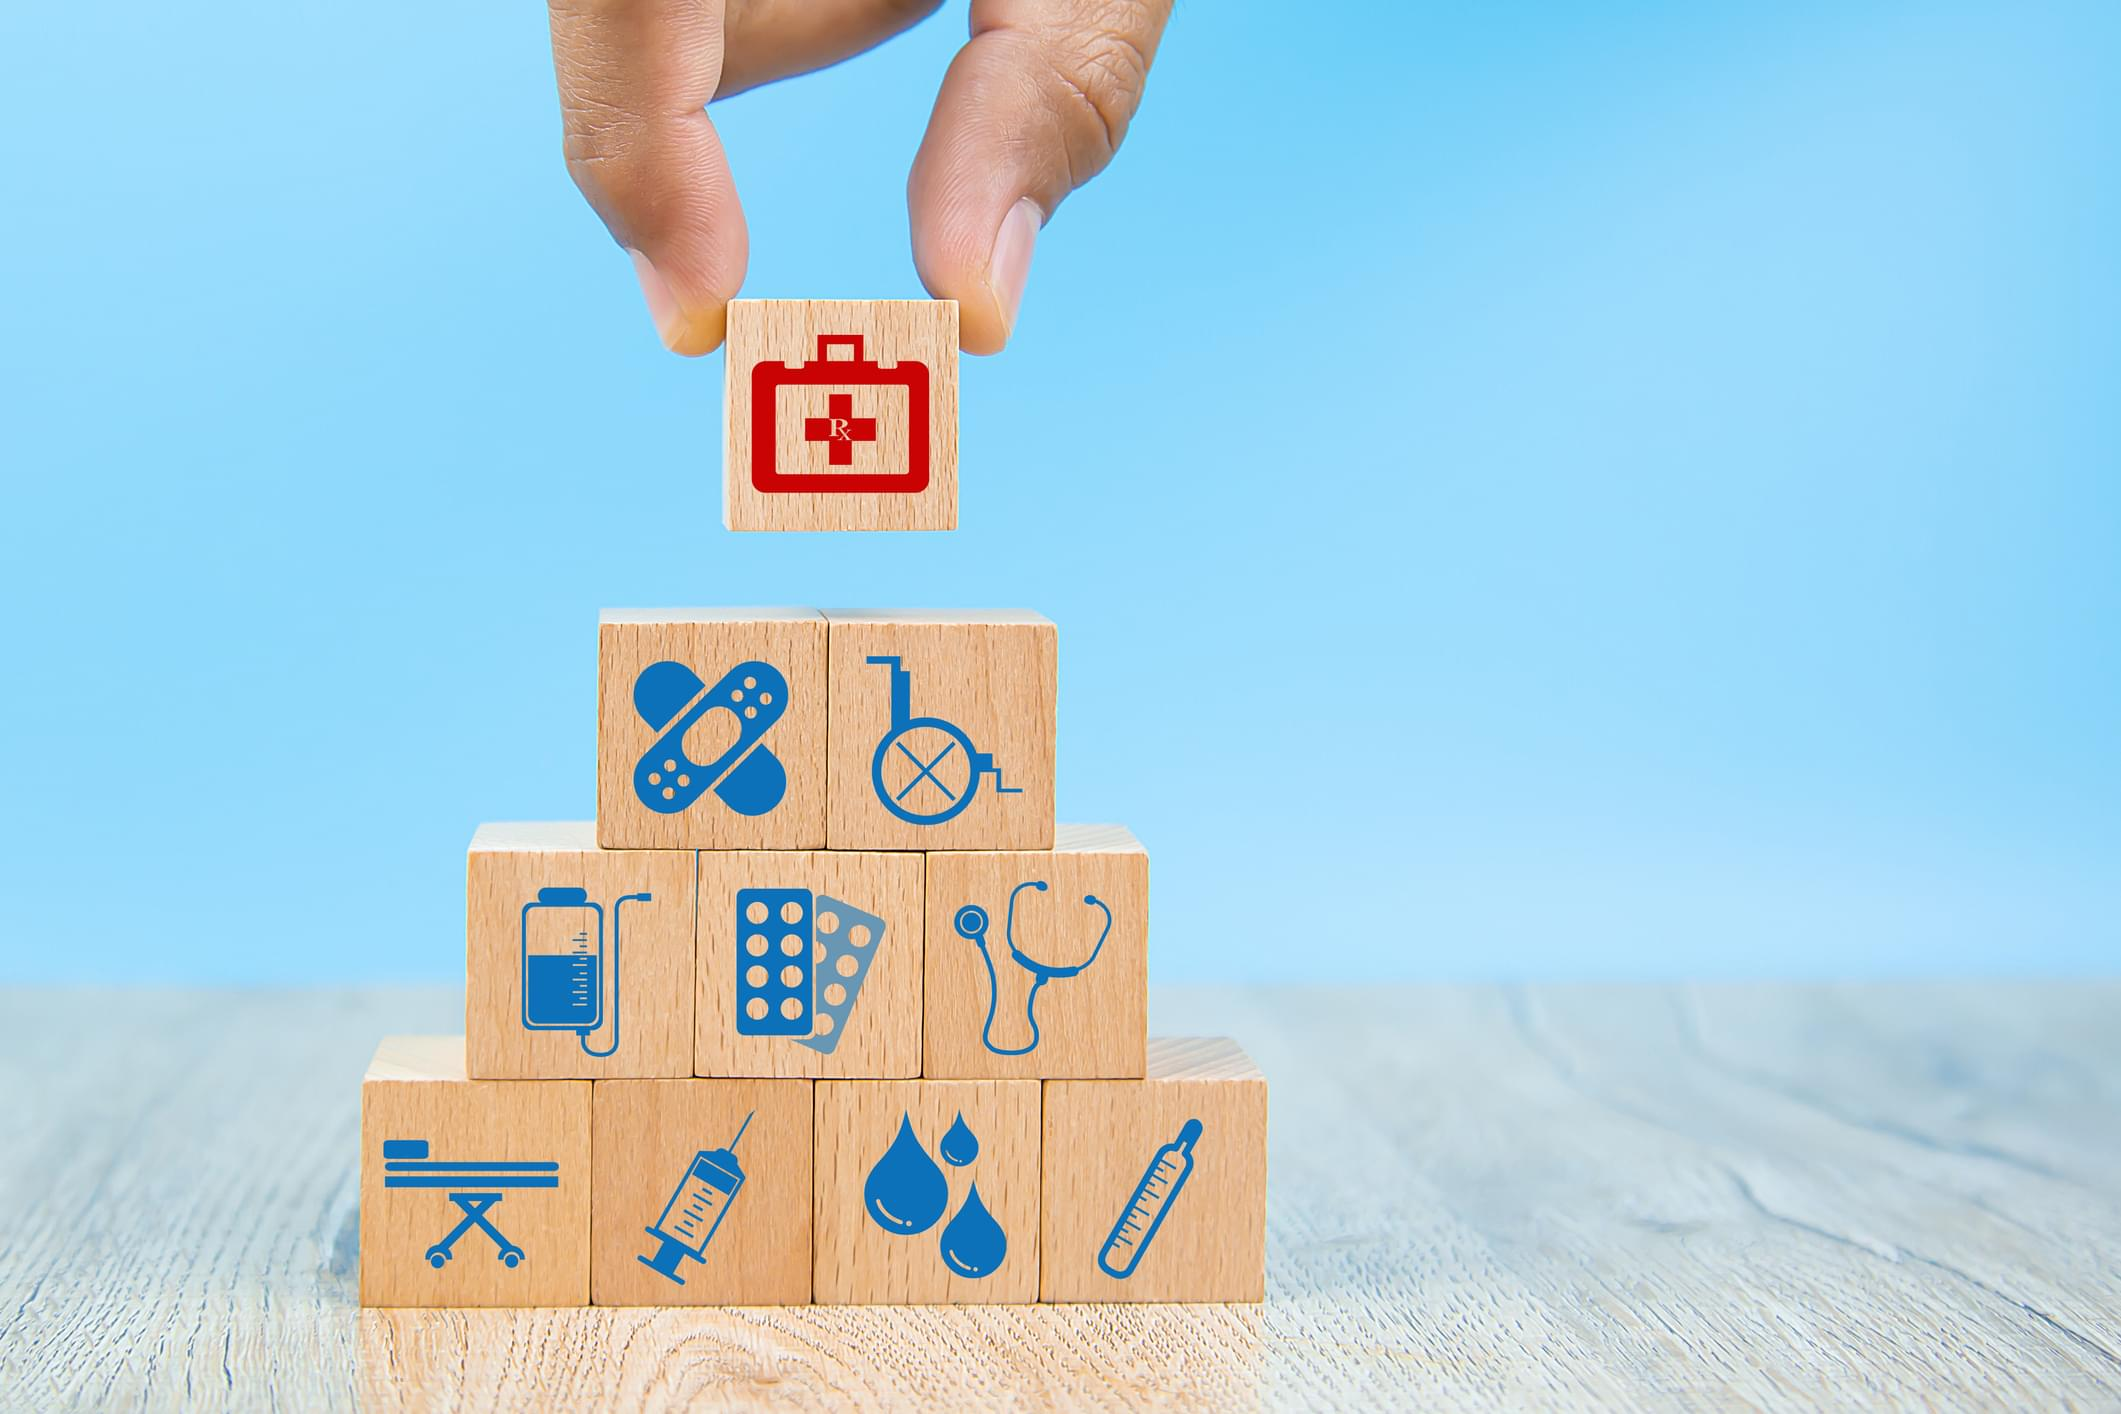 Close-up hand choose Health care and medical symbols on wooden blocks toy stacked in Pyramid shape for health insurance concepts.